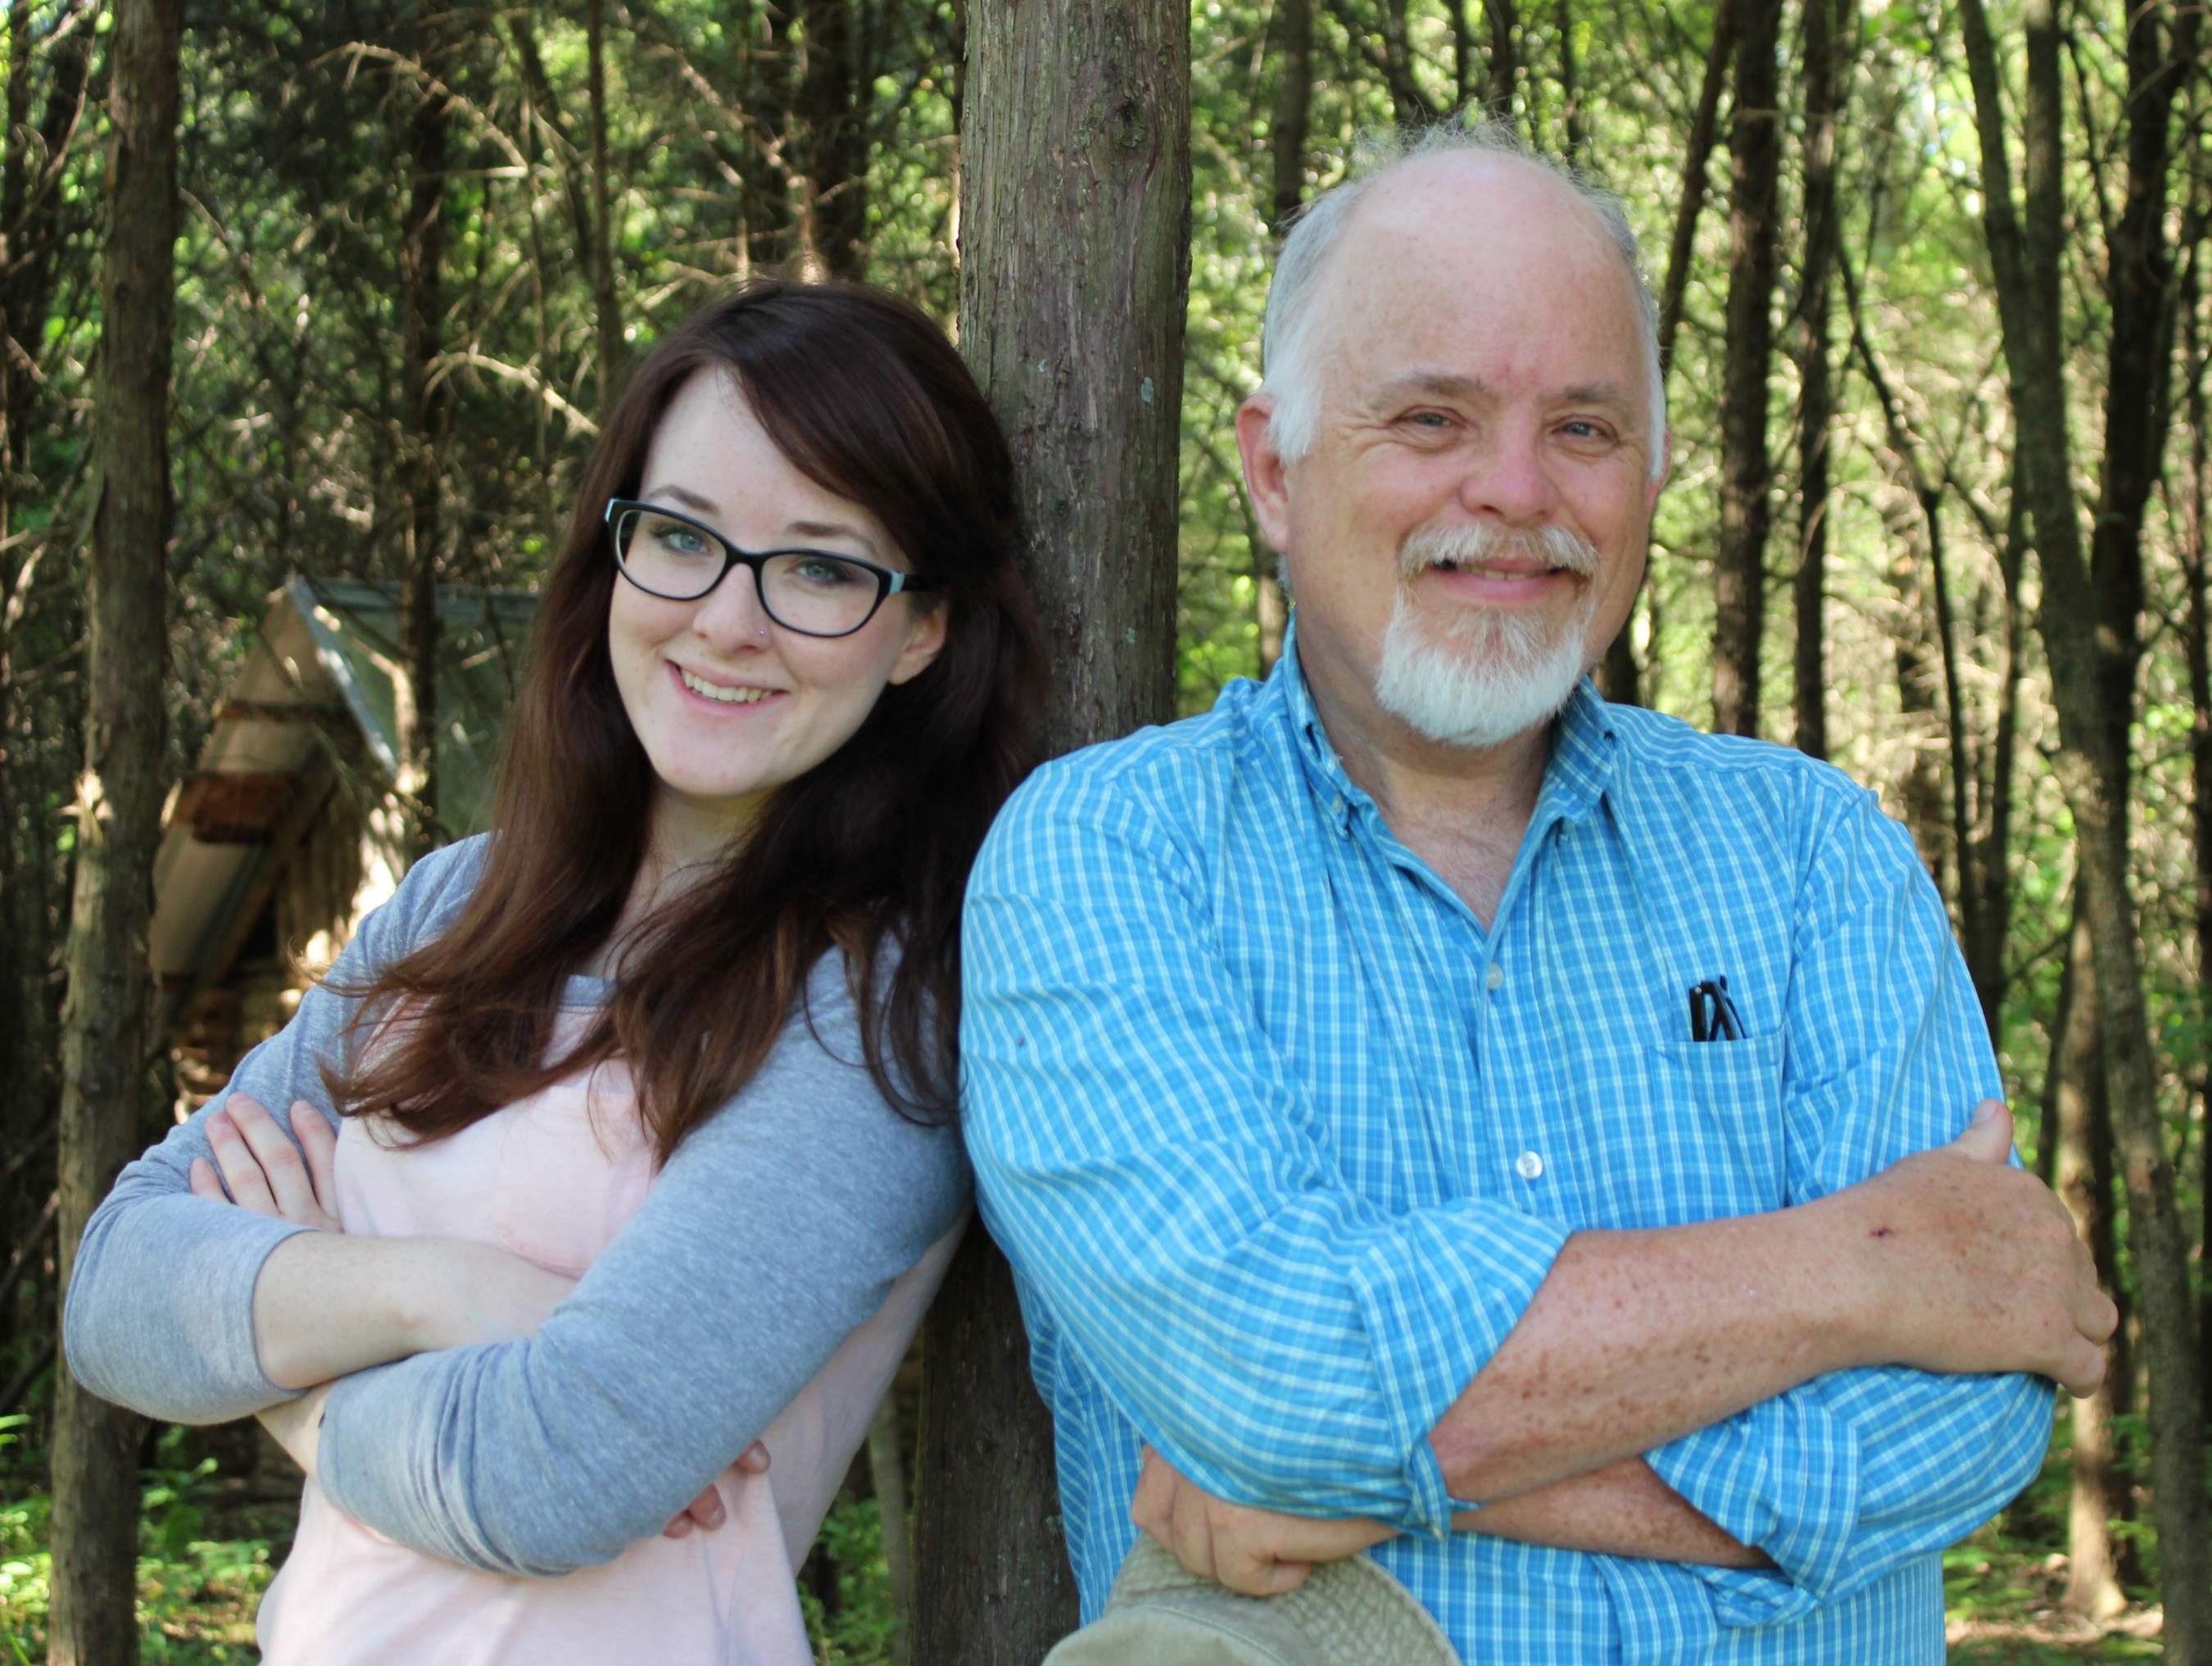 For This Father/Daughter Team, Talking About Death & Dying Is Just a Game